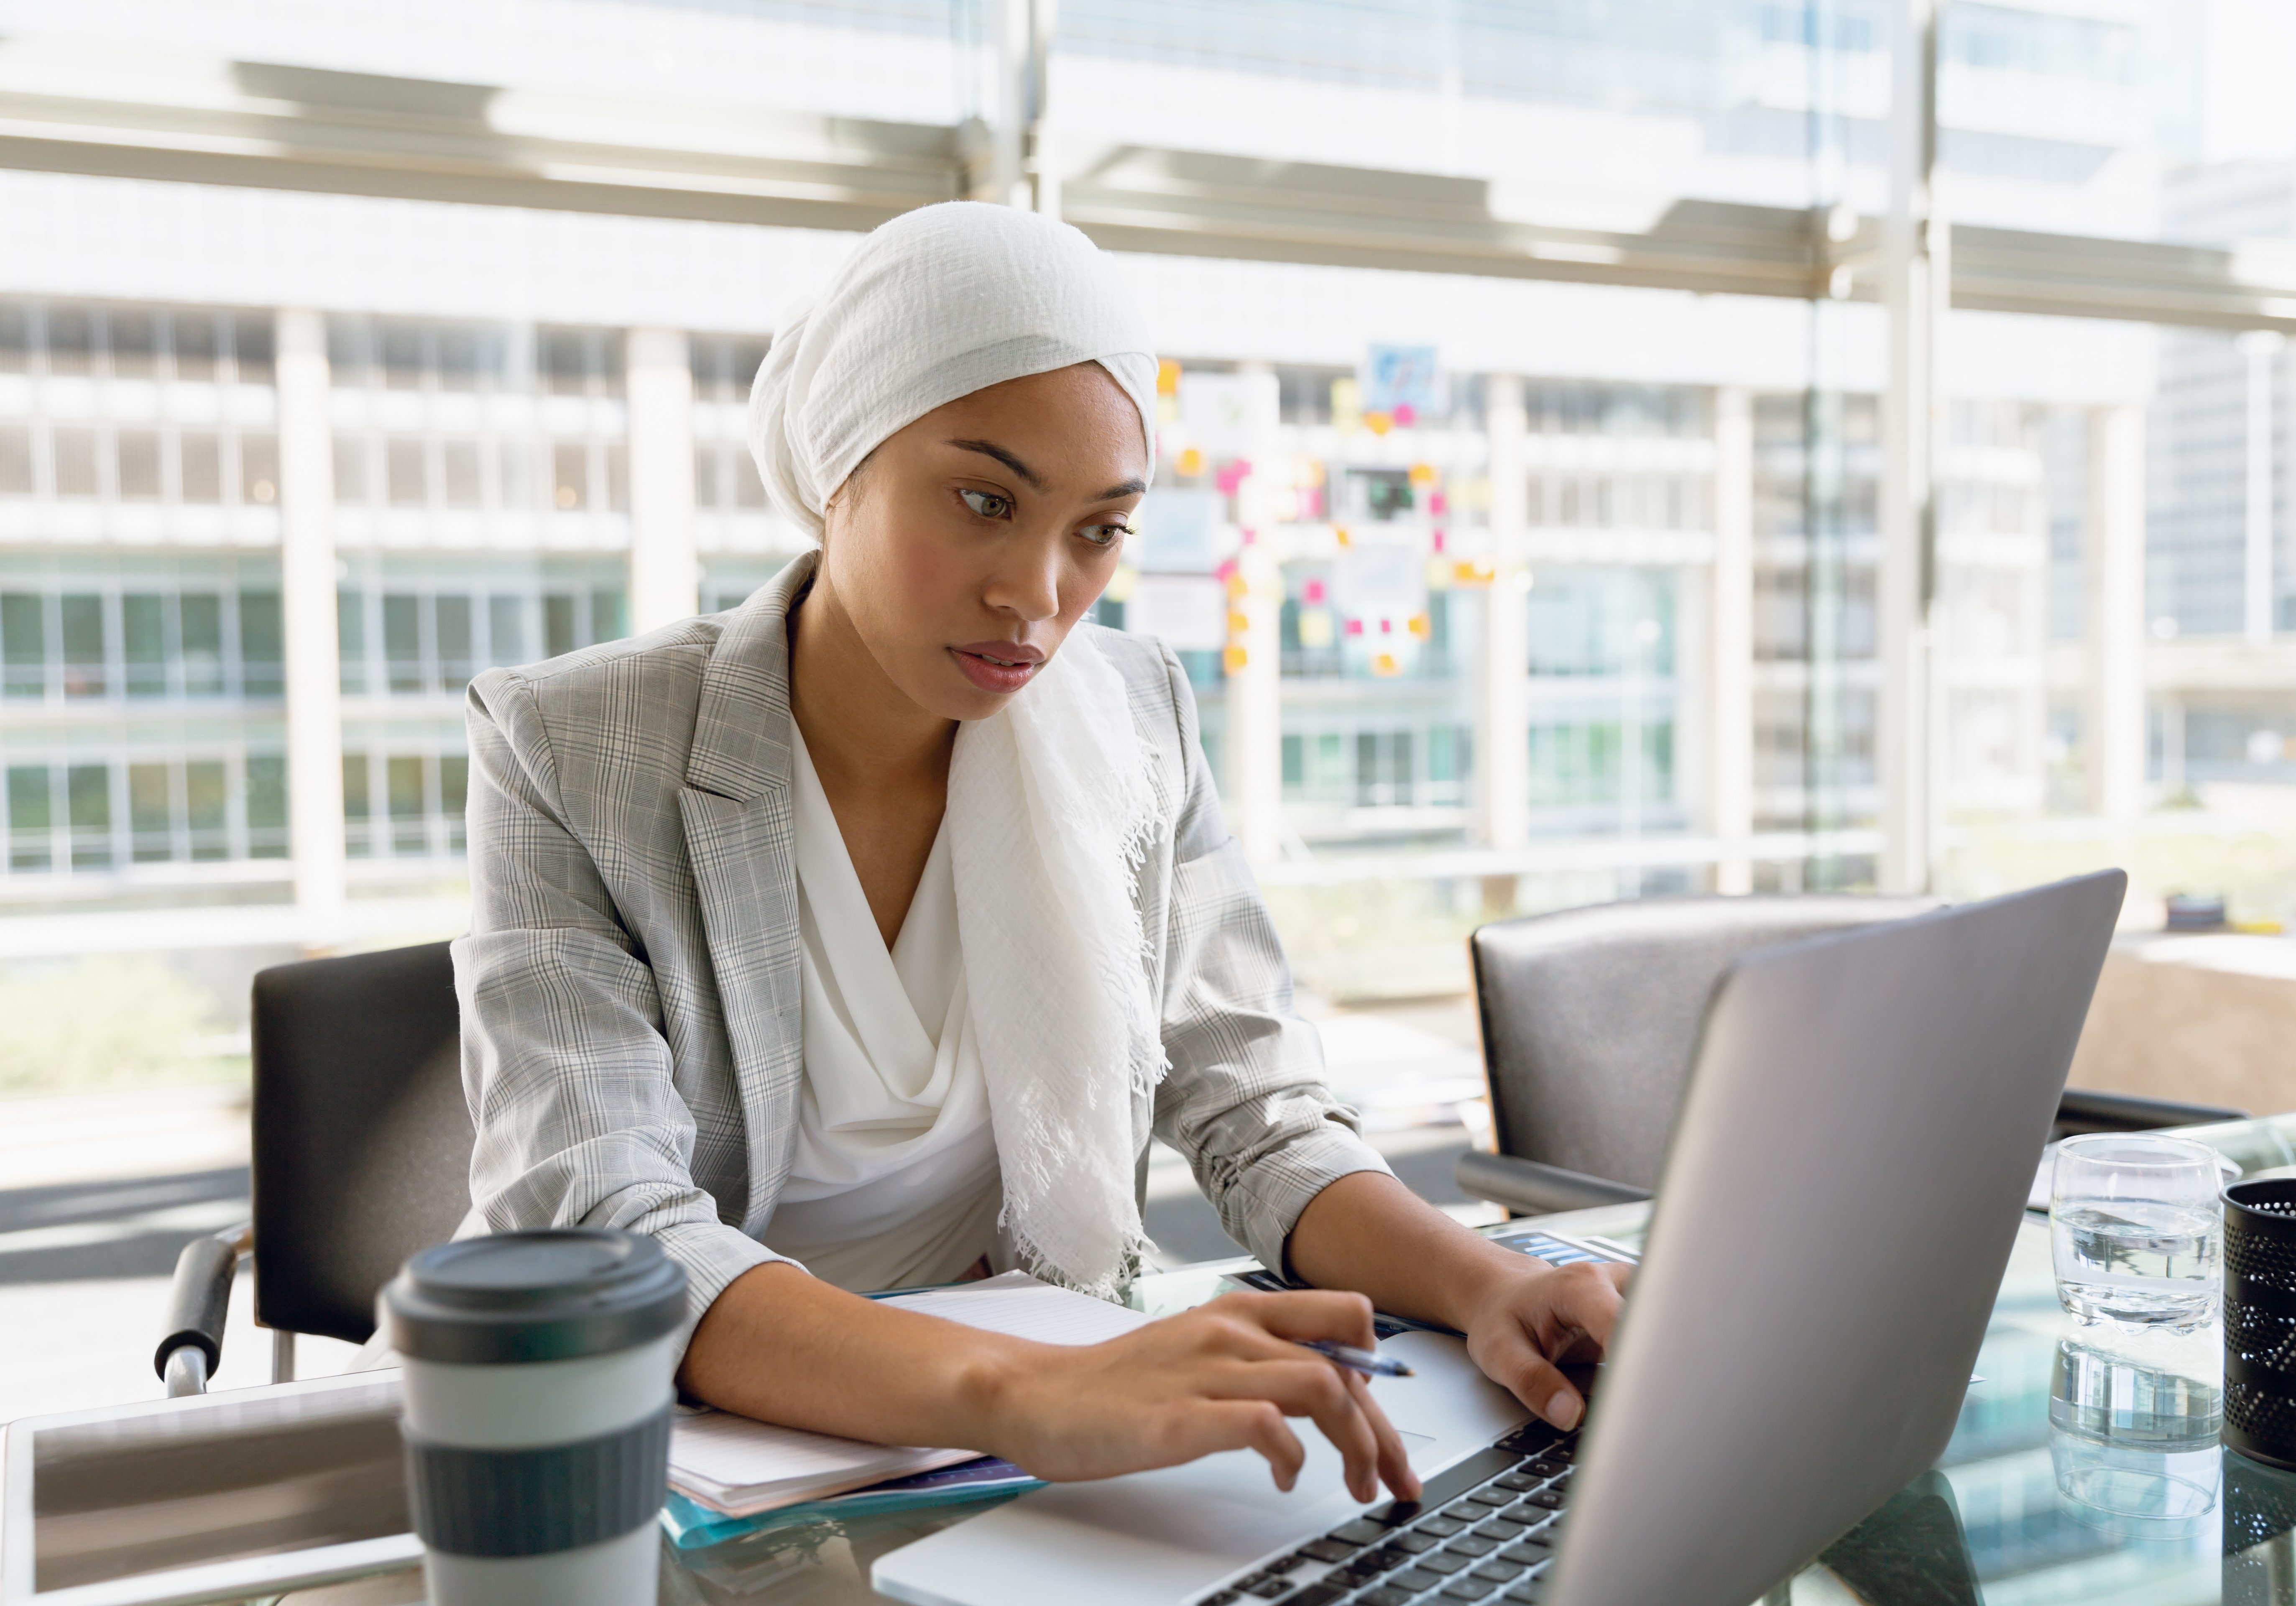 Front view of businesswoman in hijab working on laptop at desk in a modern office. Modern corporate start up new business concept with entrepreneur working hard